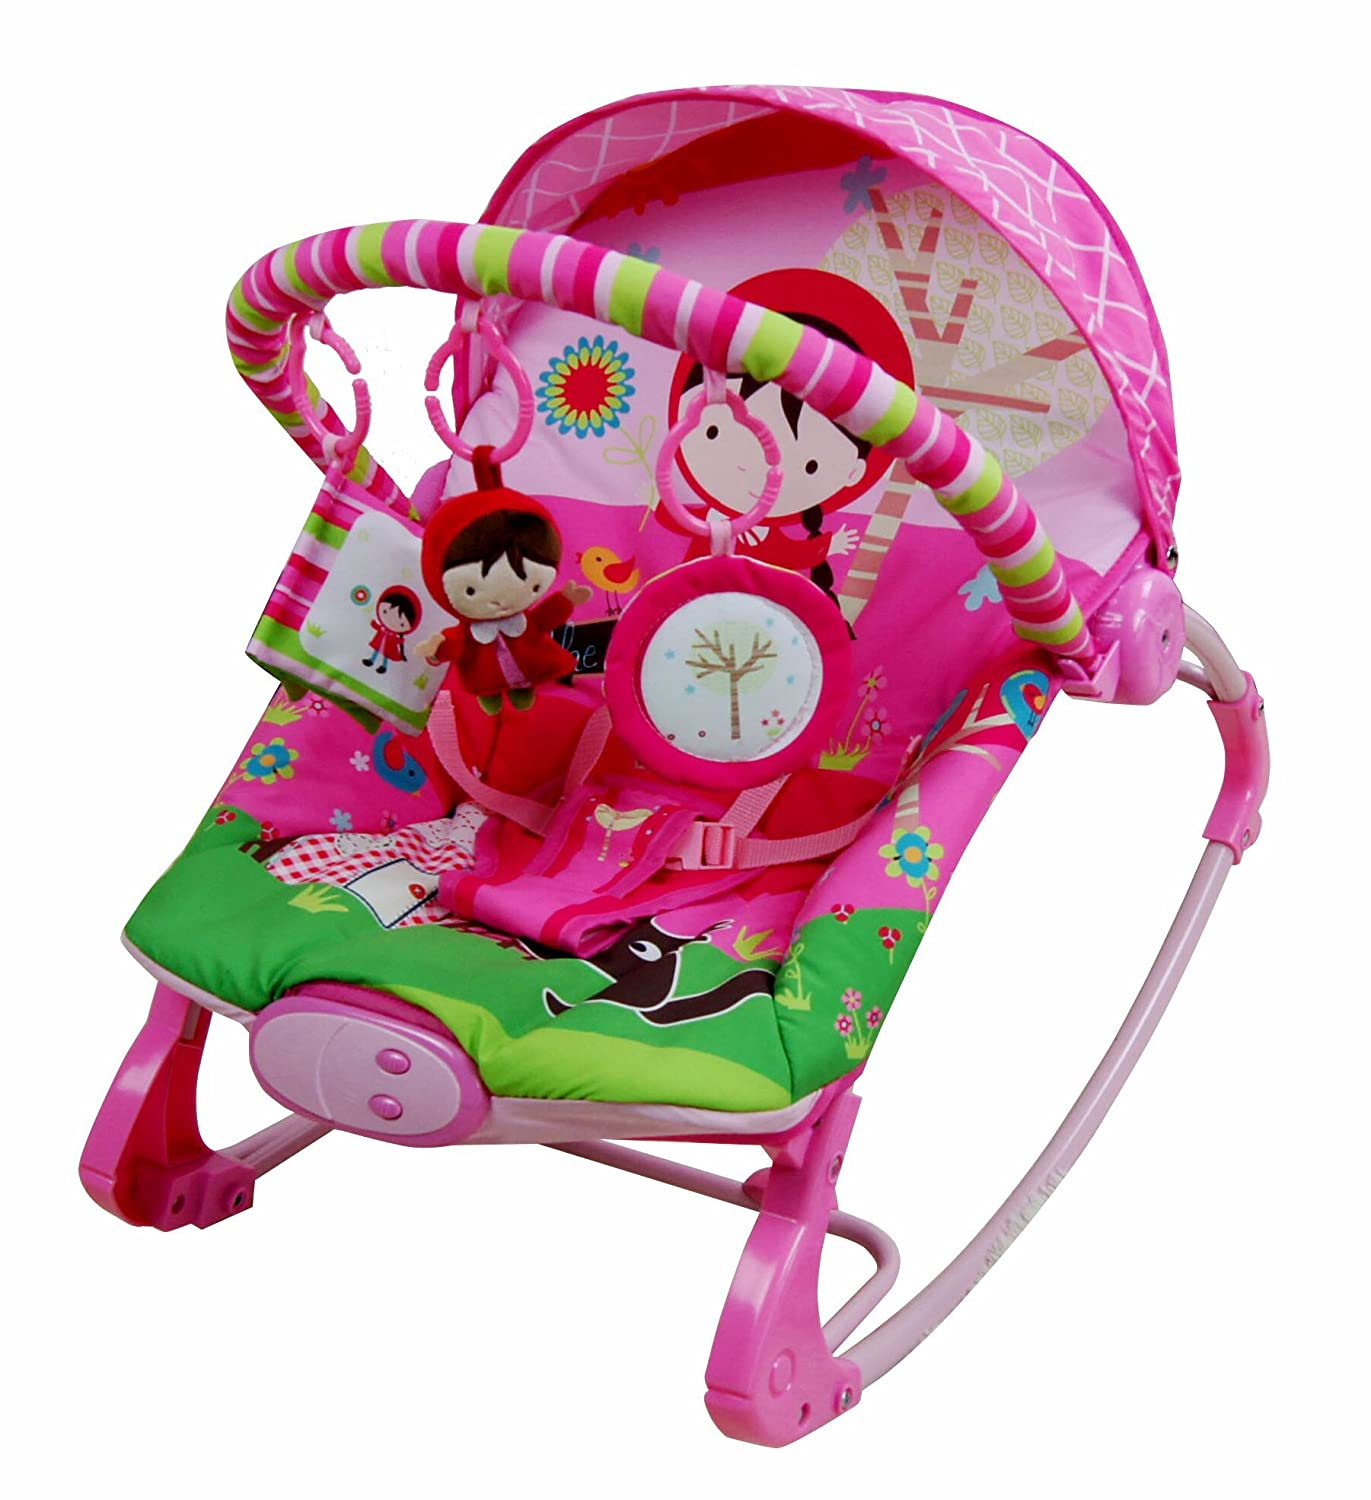 Care Pink Girl Rocker Rocking Chair Bouncer Musical Melodies Soothing Vibration Baby Bouncing Reclining Chair with 3 Hanging Toys just 4 baby